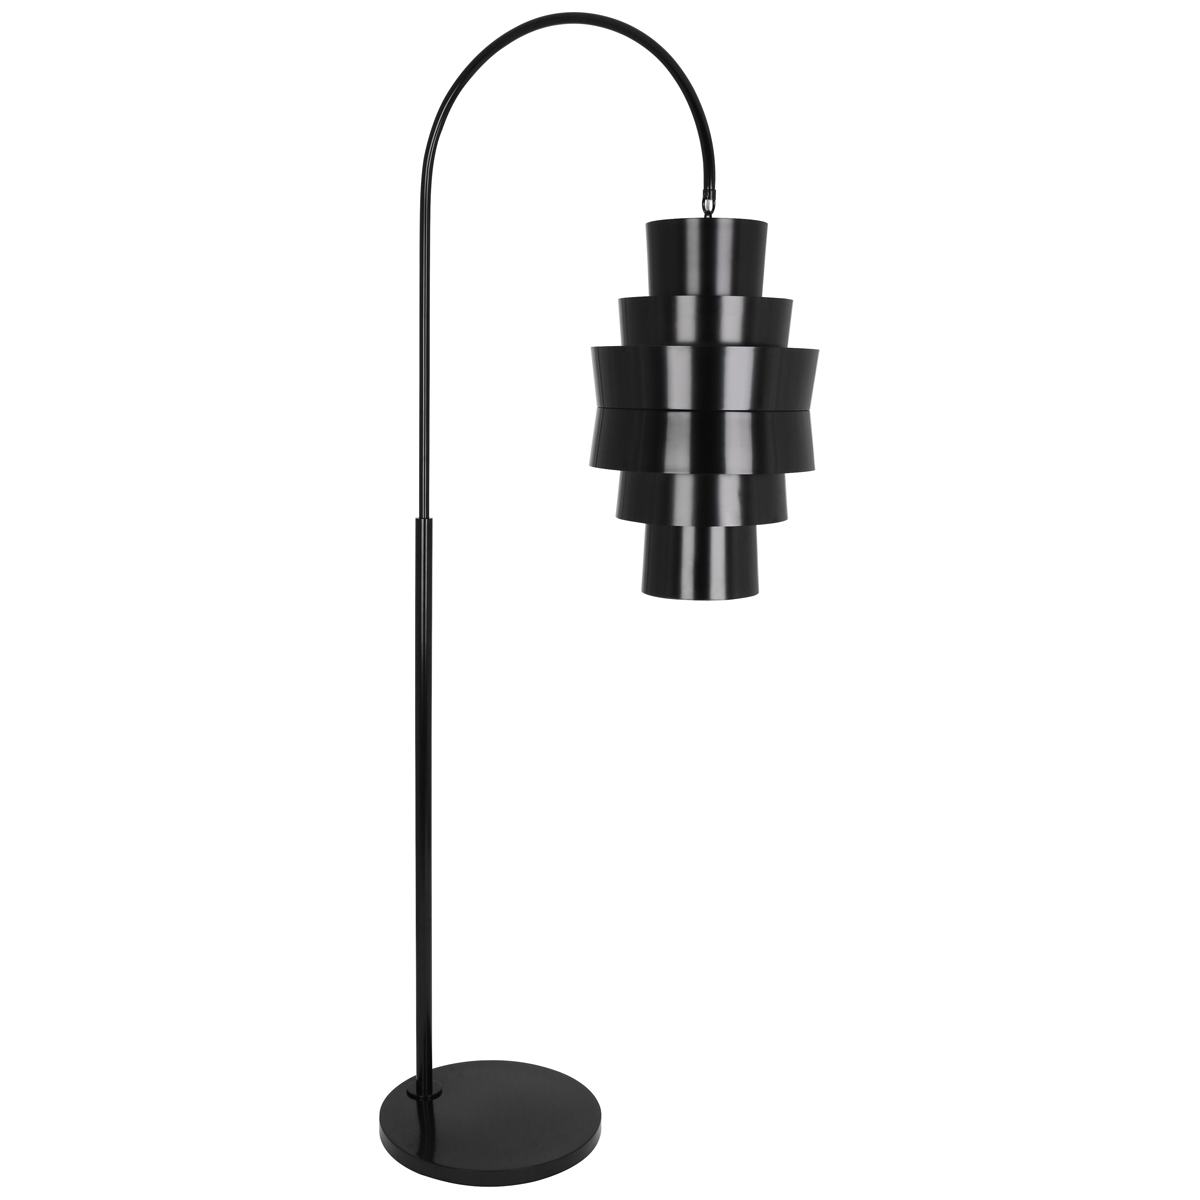 Pierce Floor Lamp Style #B981